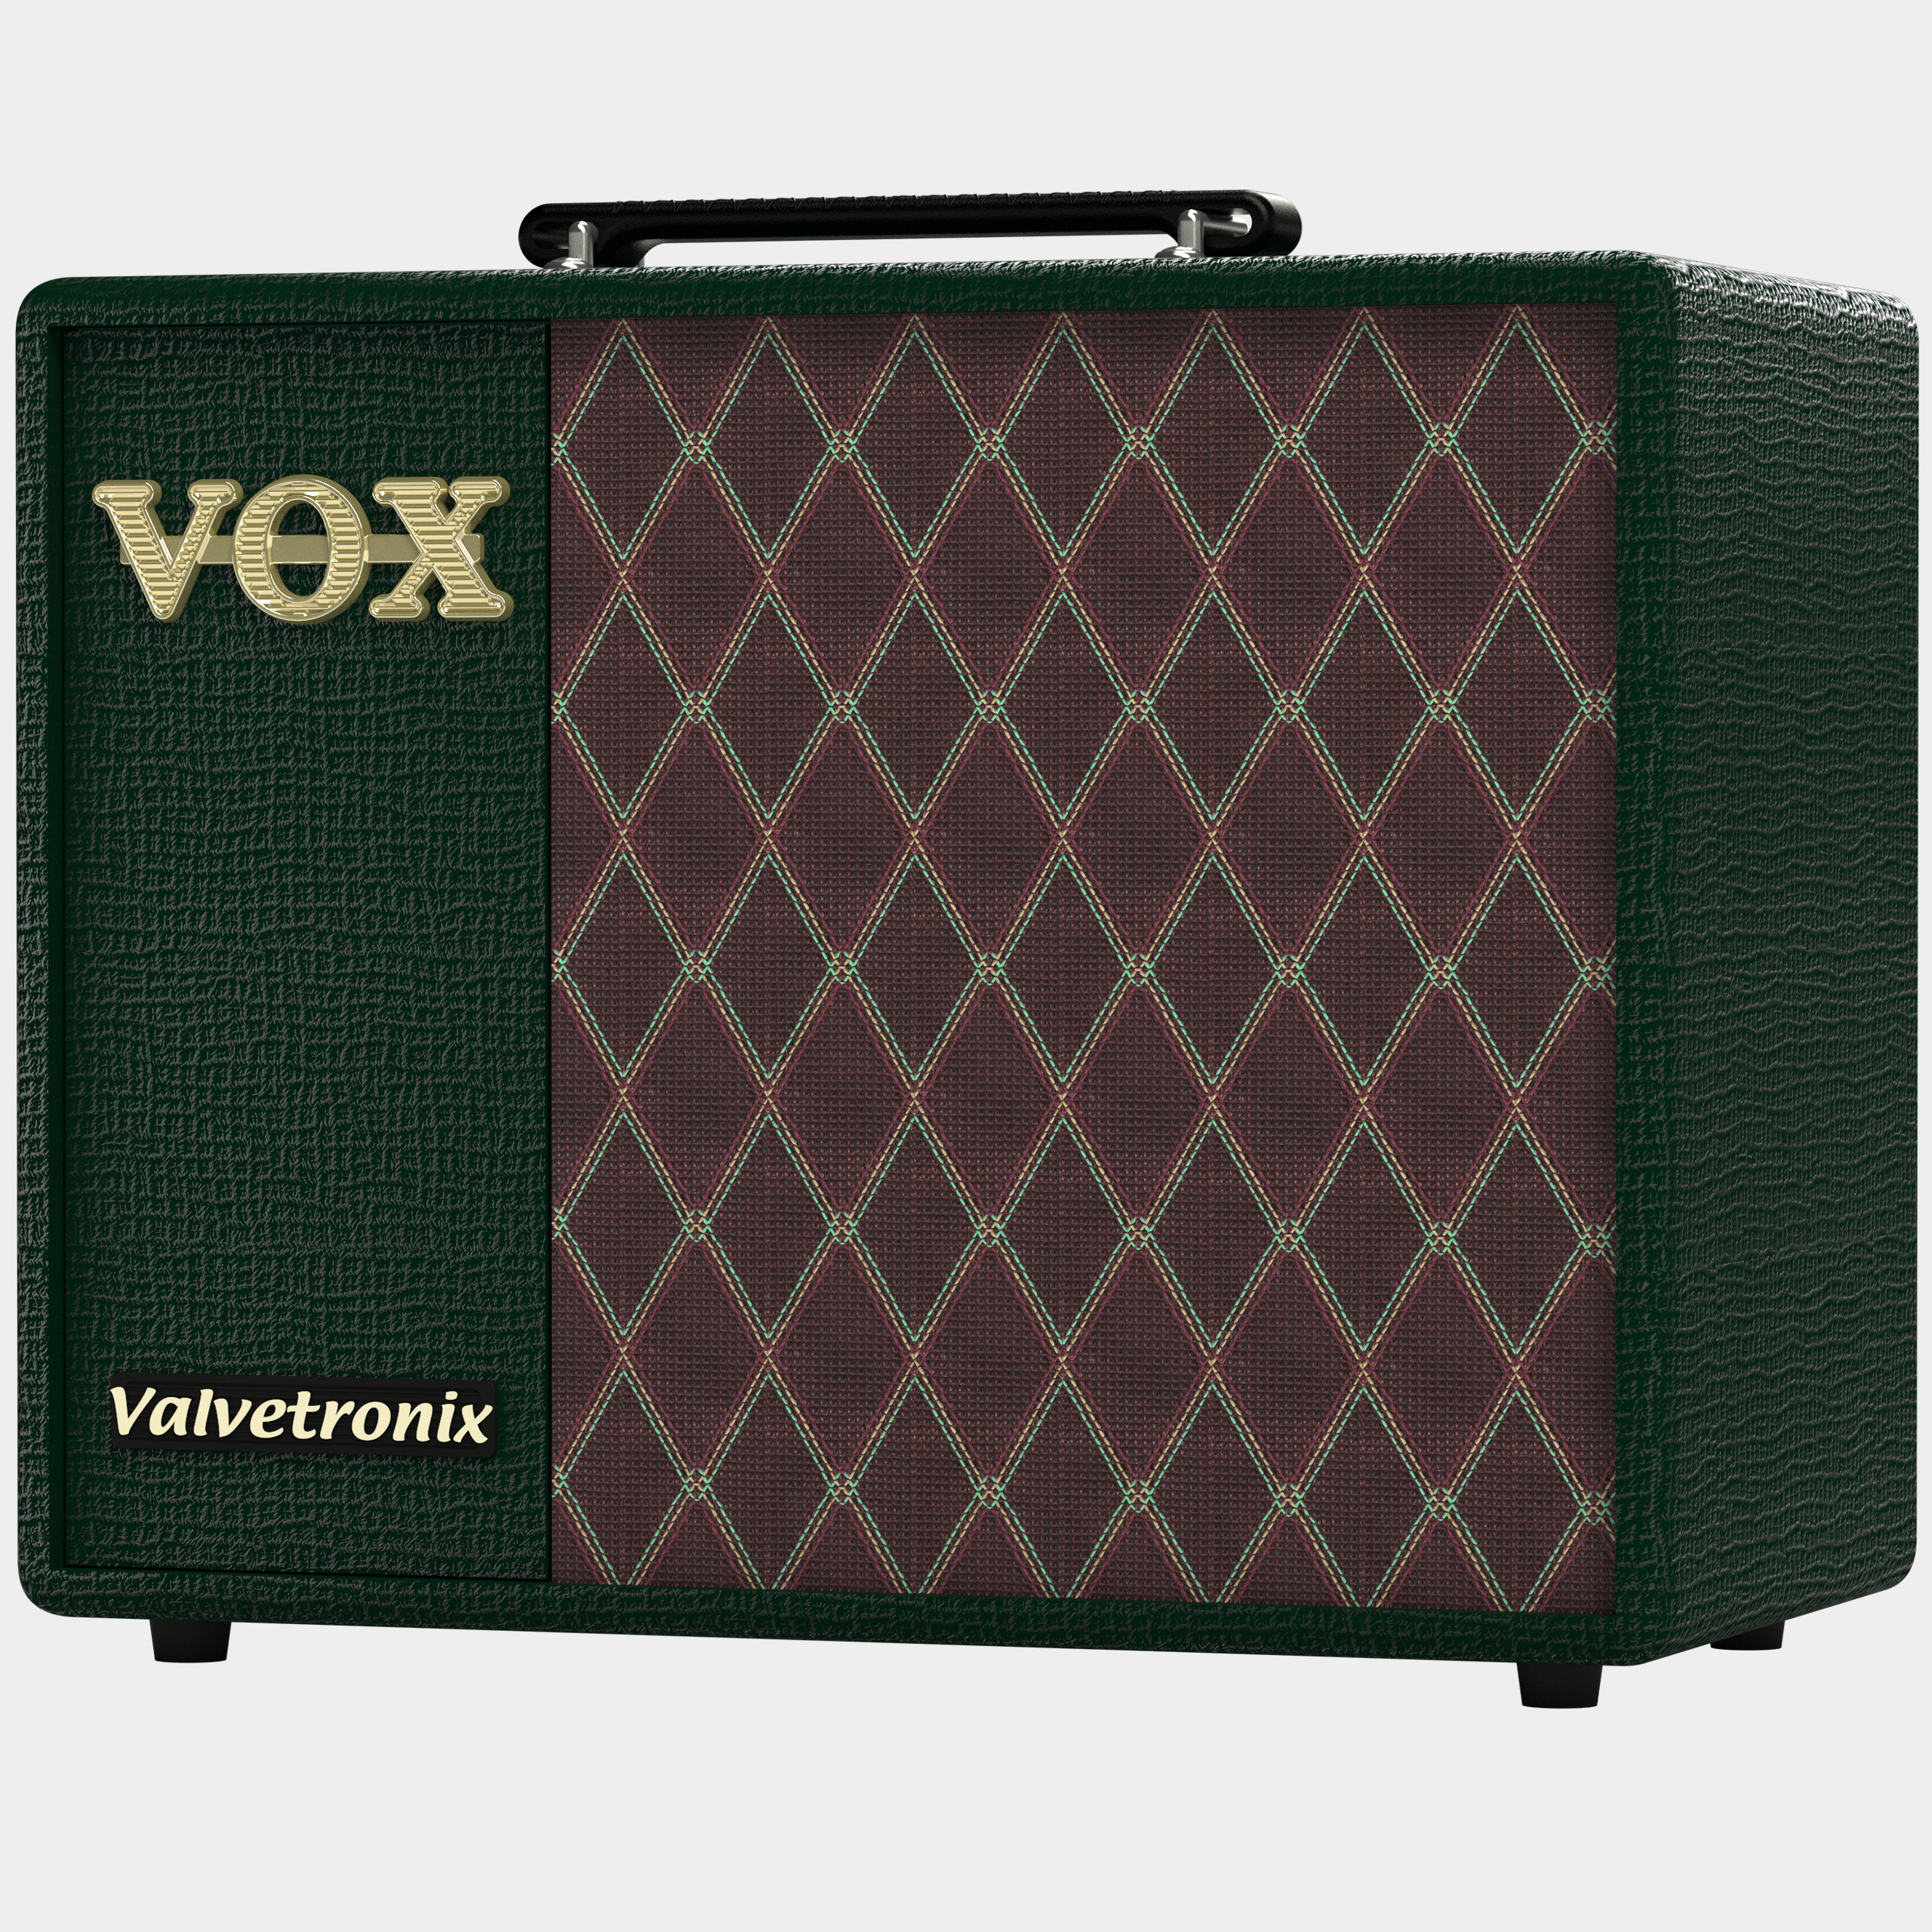 VOX VT20X Limited Edition British Racing Green